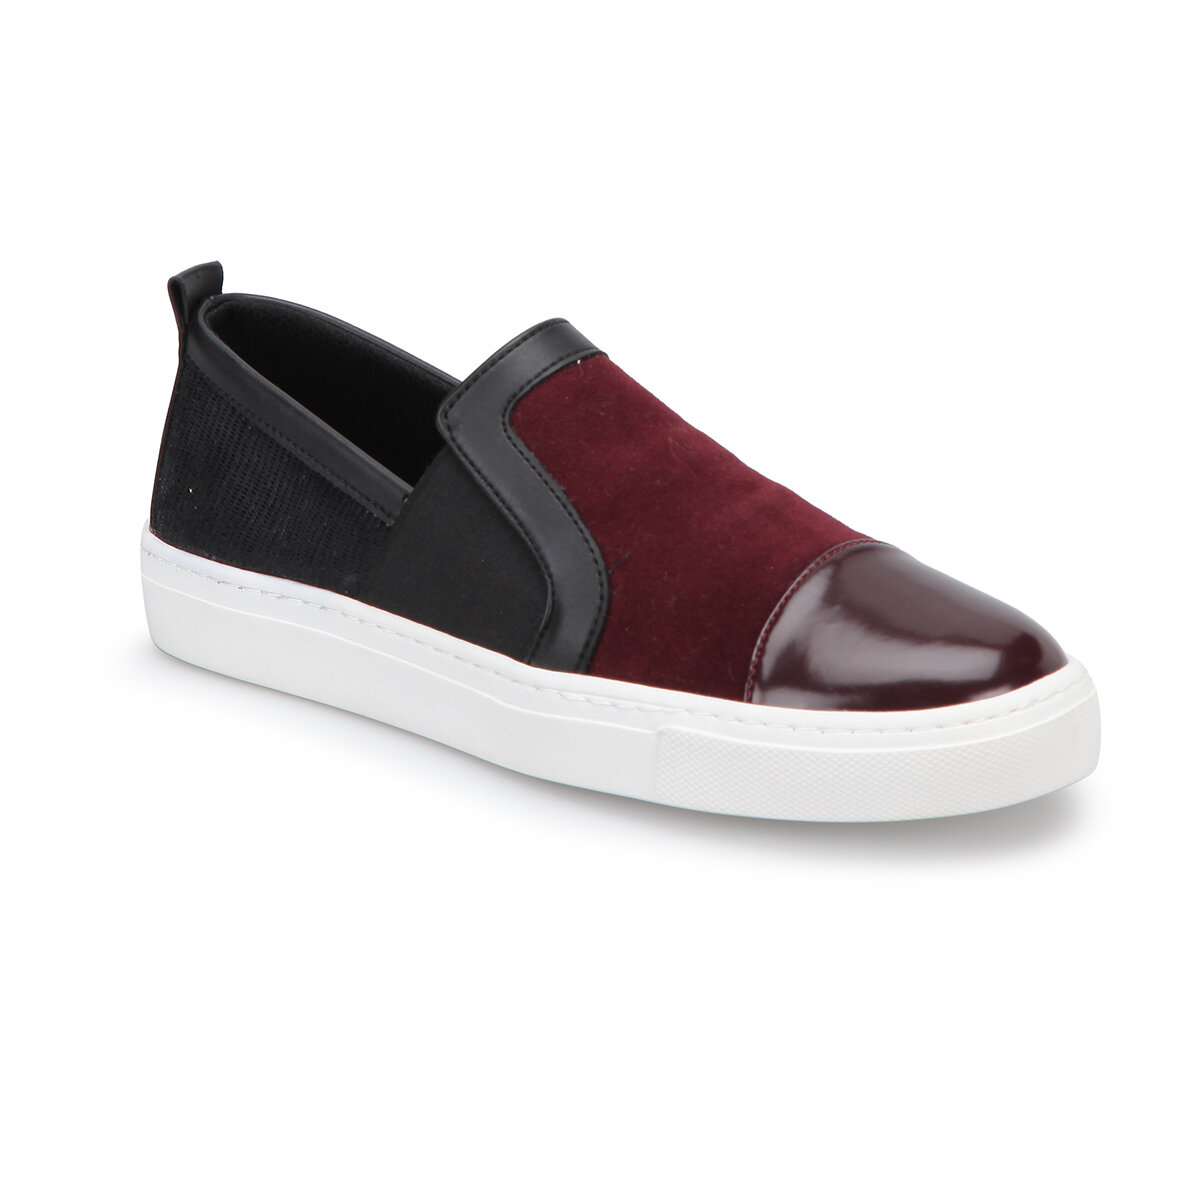 FLO Z054 Burgundy Women Slip On Shoes BUTIGO